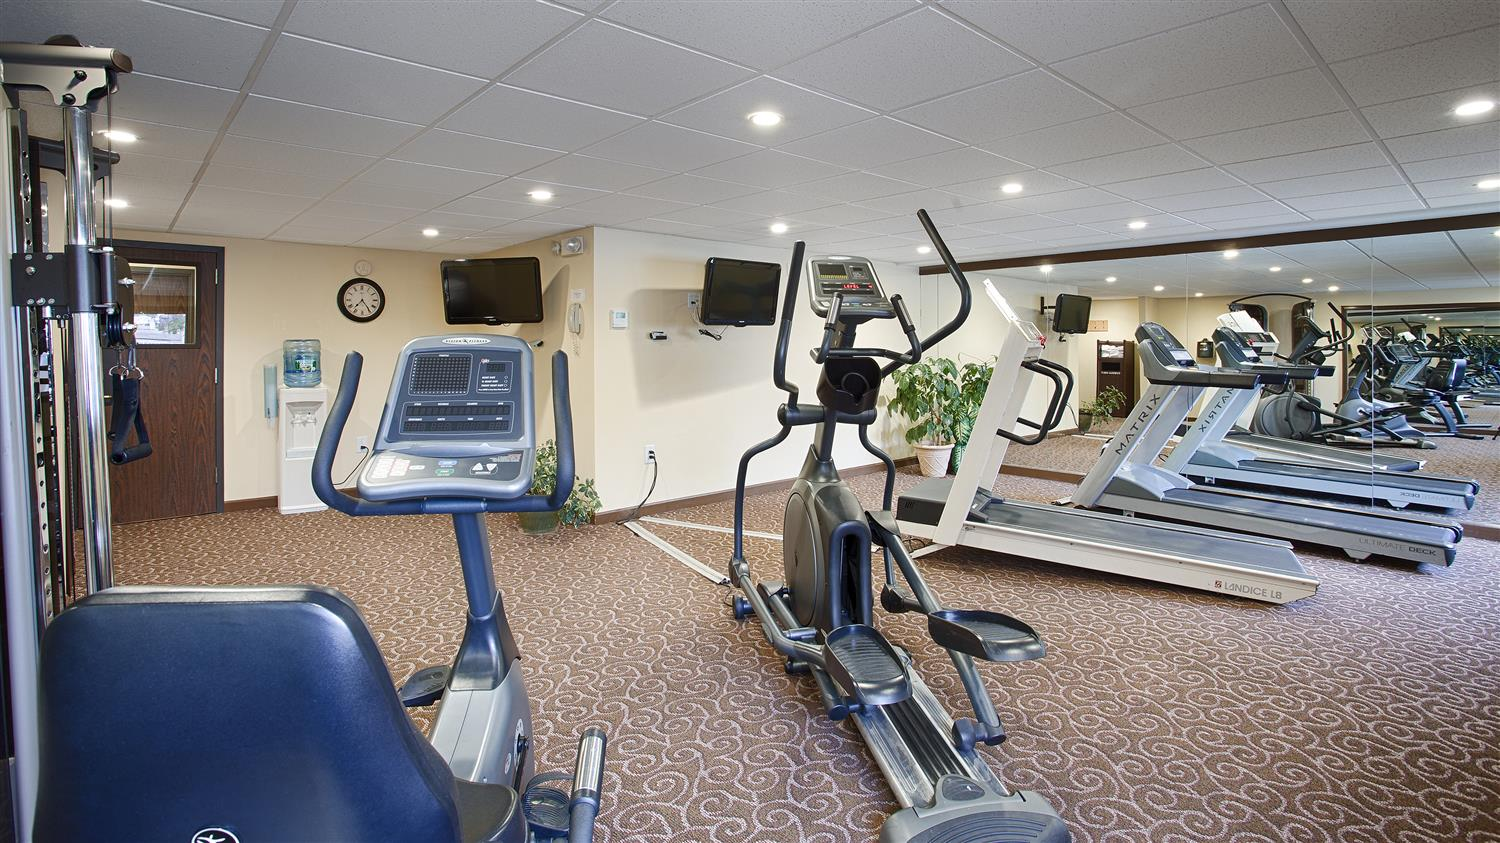 Fitness/ Exercise Room - Best Western Plus Augusta Civic Center Inn